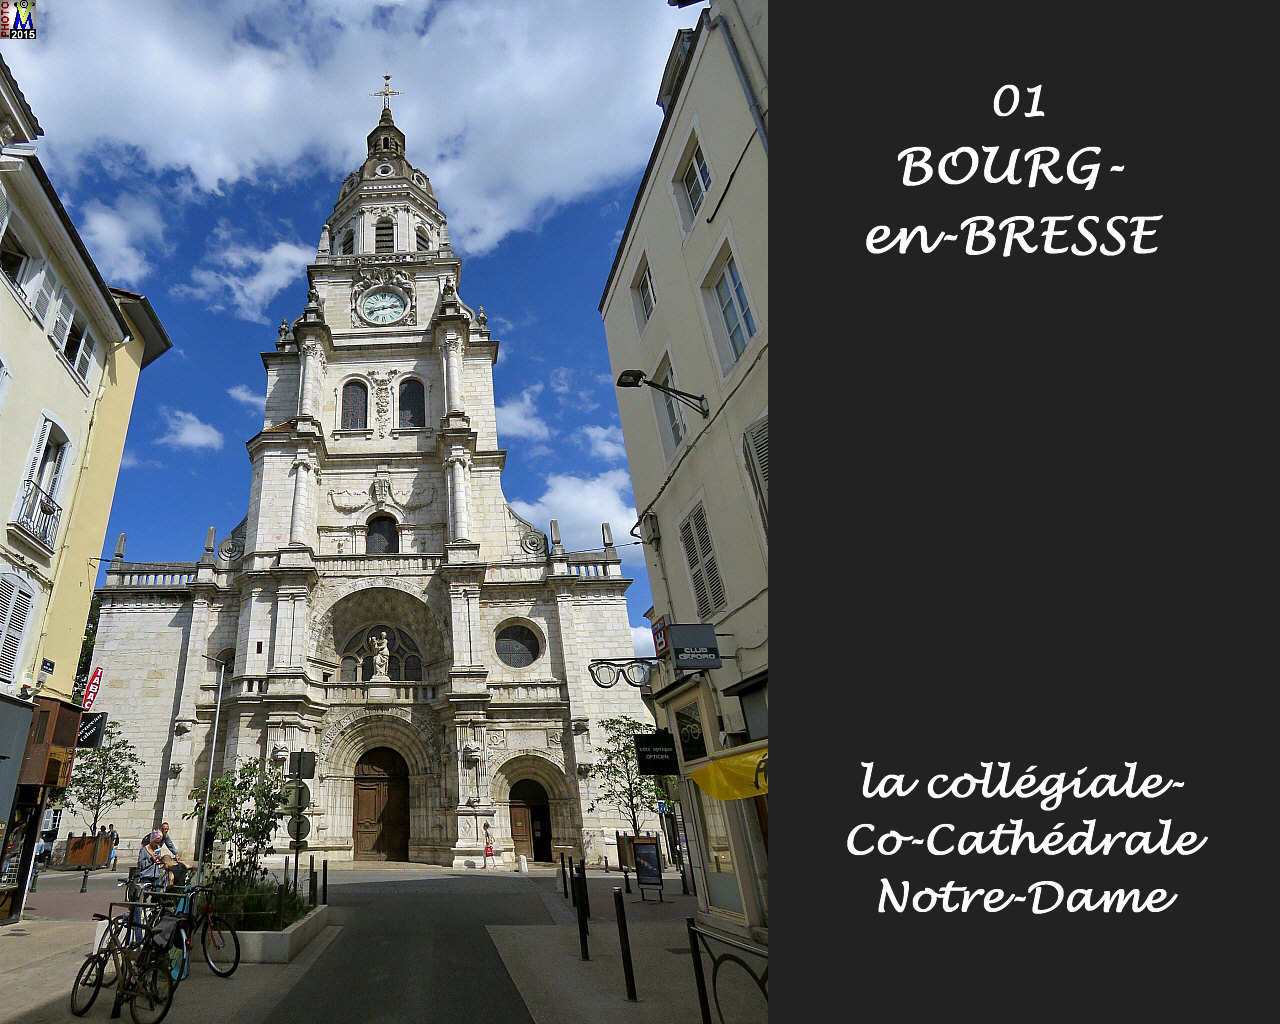 01BOURG-BRESSE_cathedrale_102.jpg